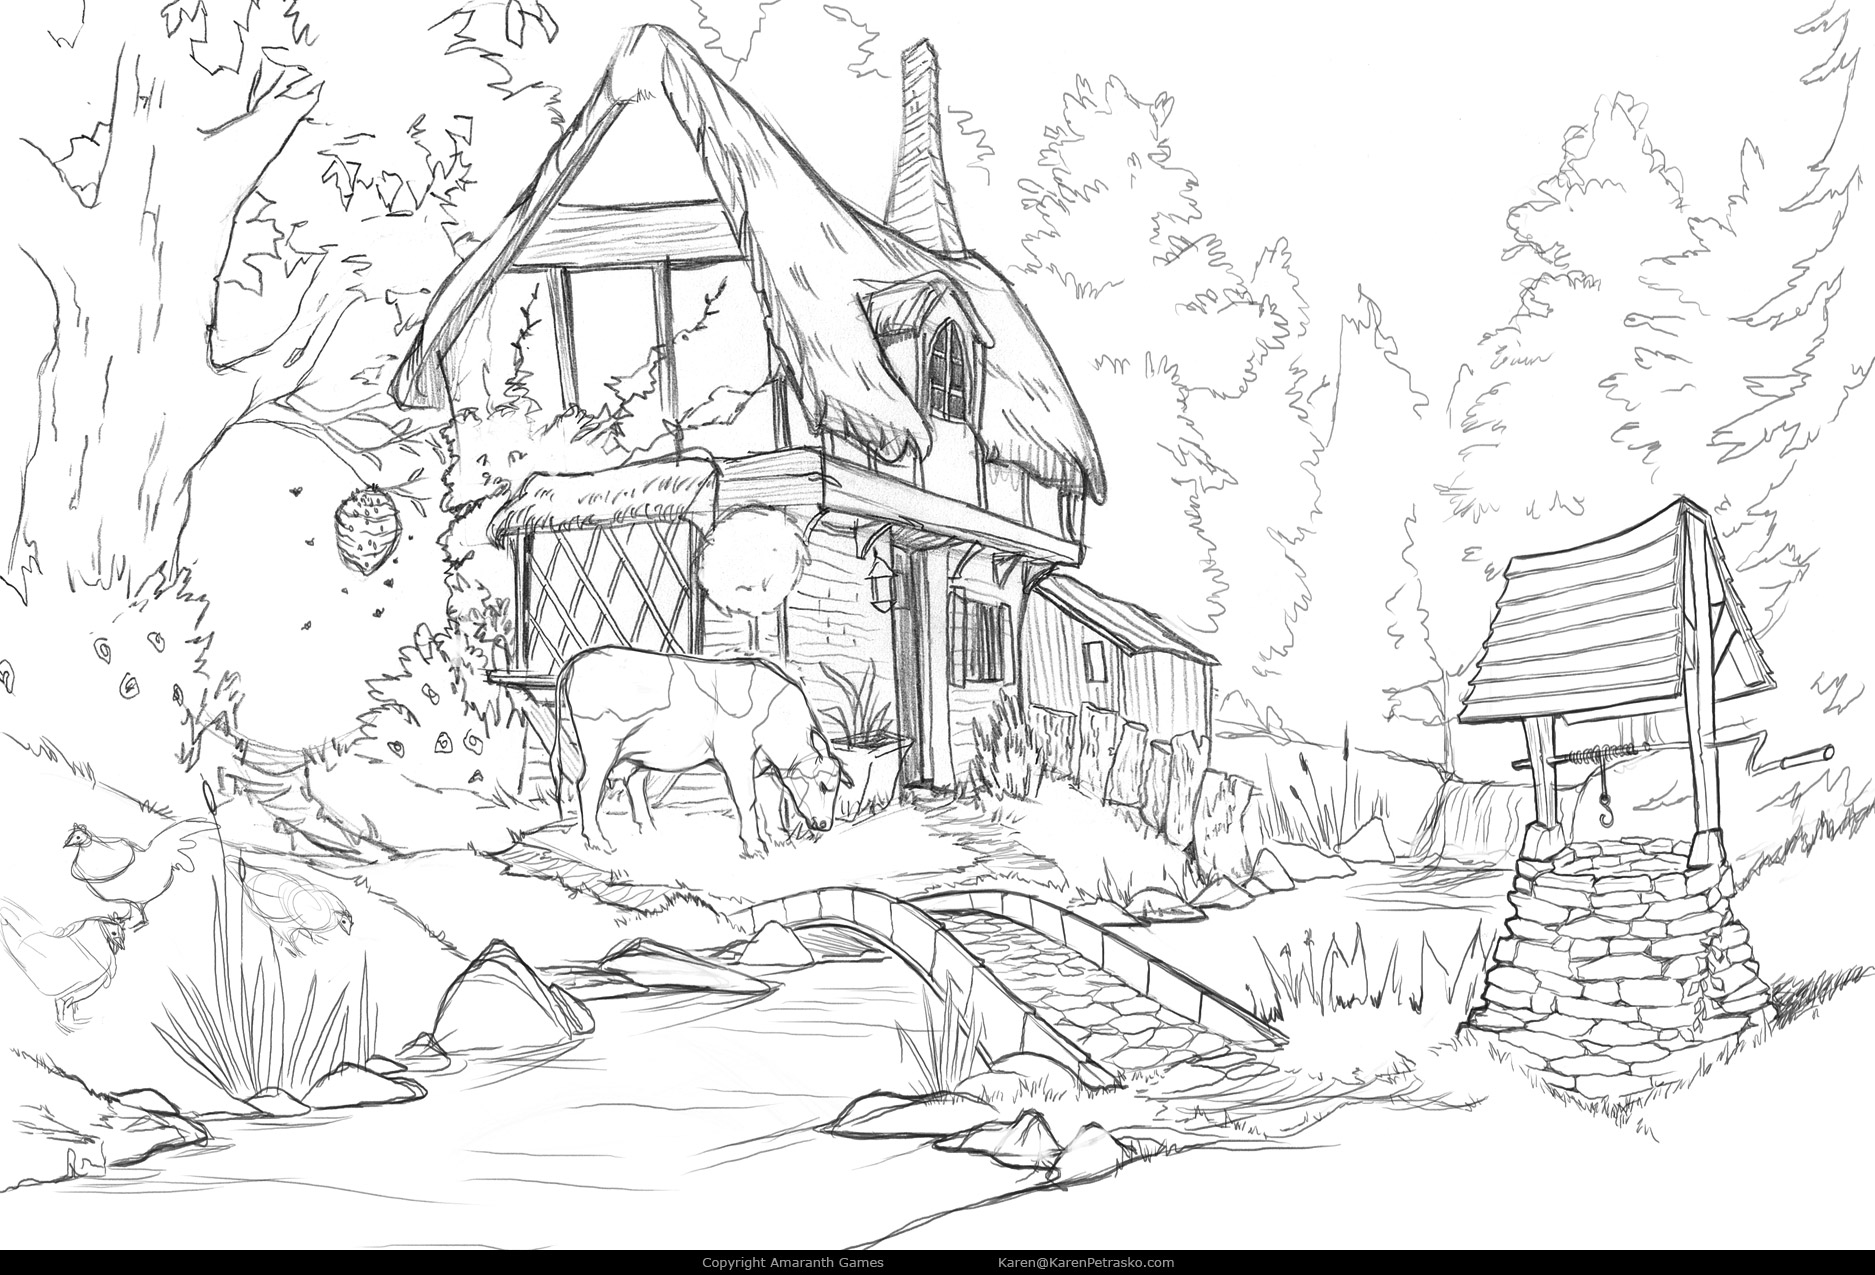 Cottage sketch in Curse at Twilight: Thief of Souls